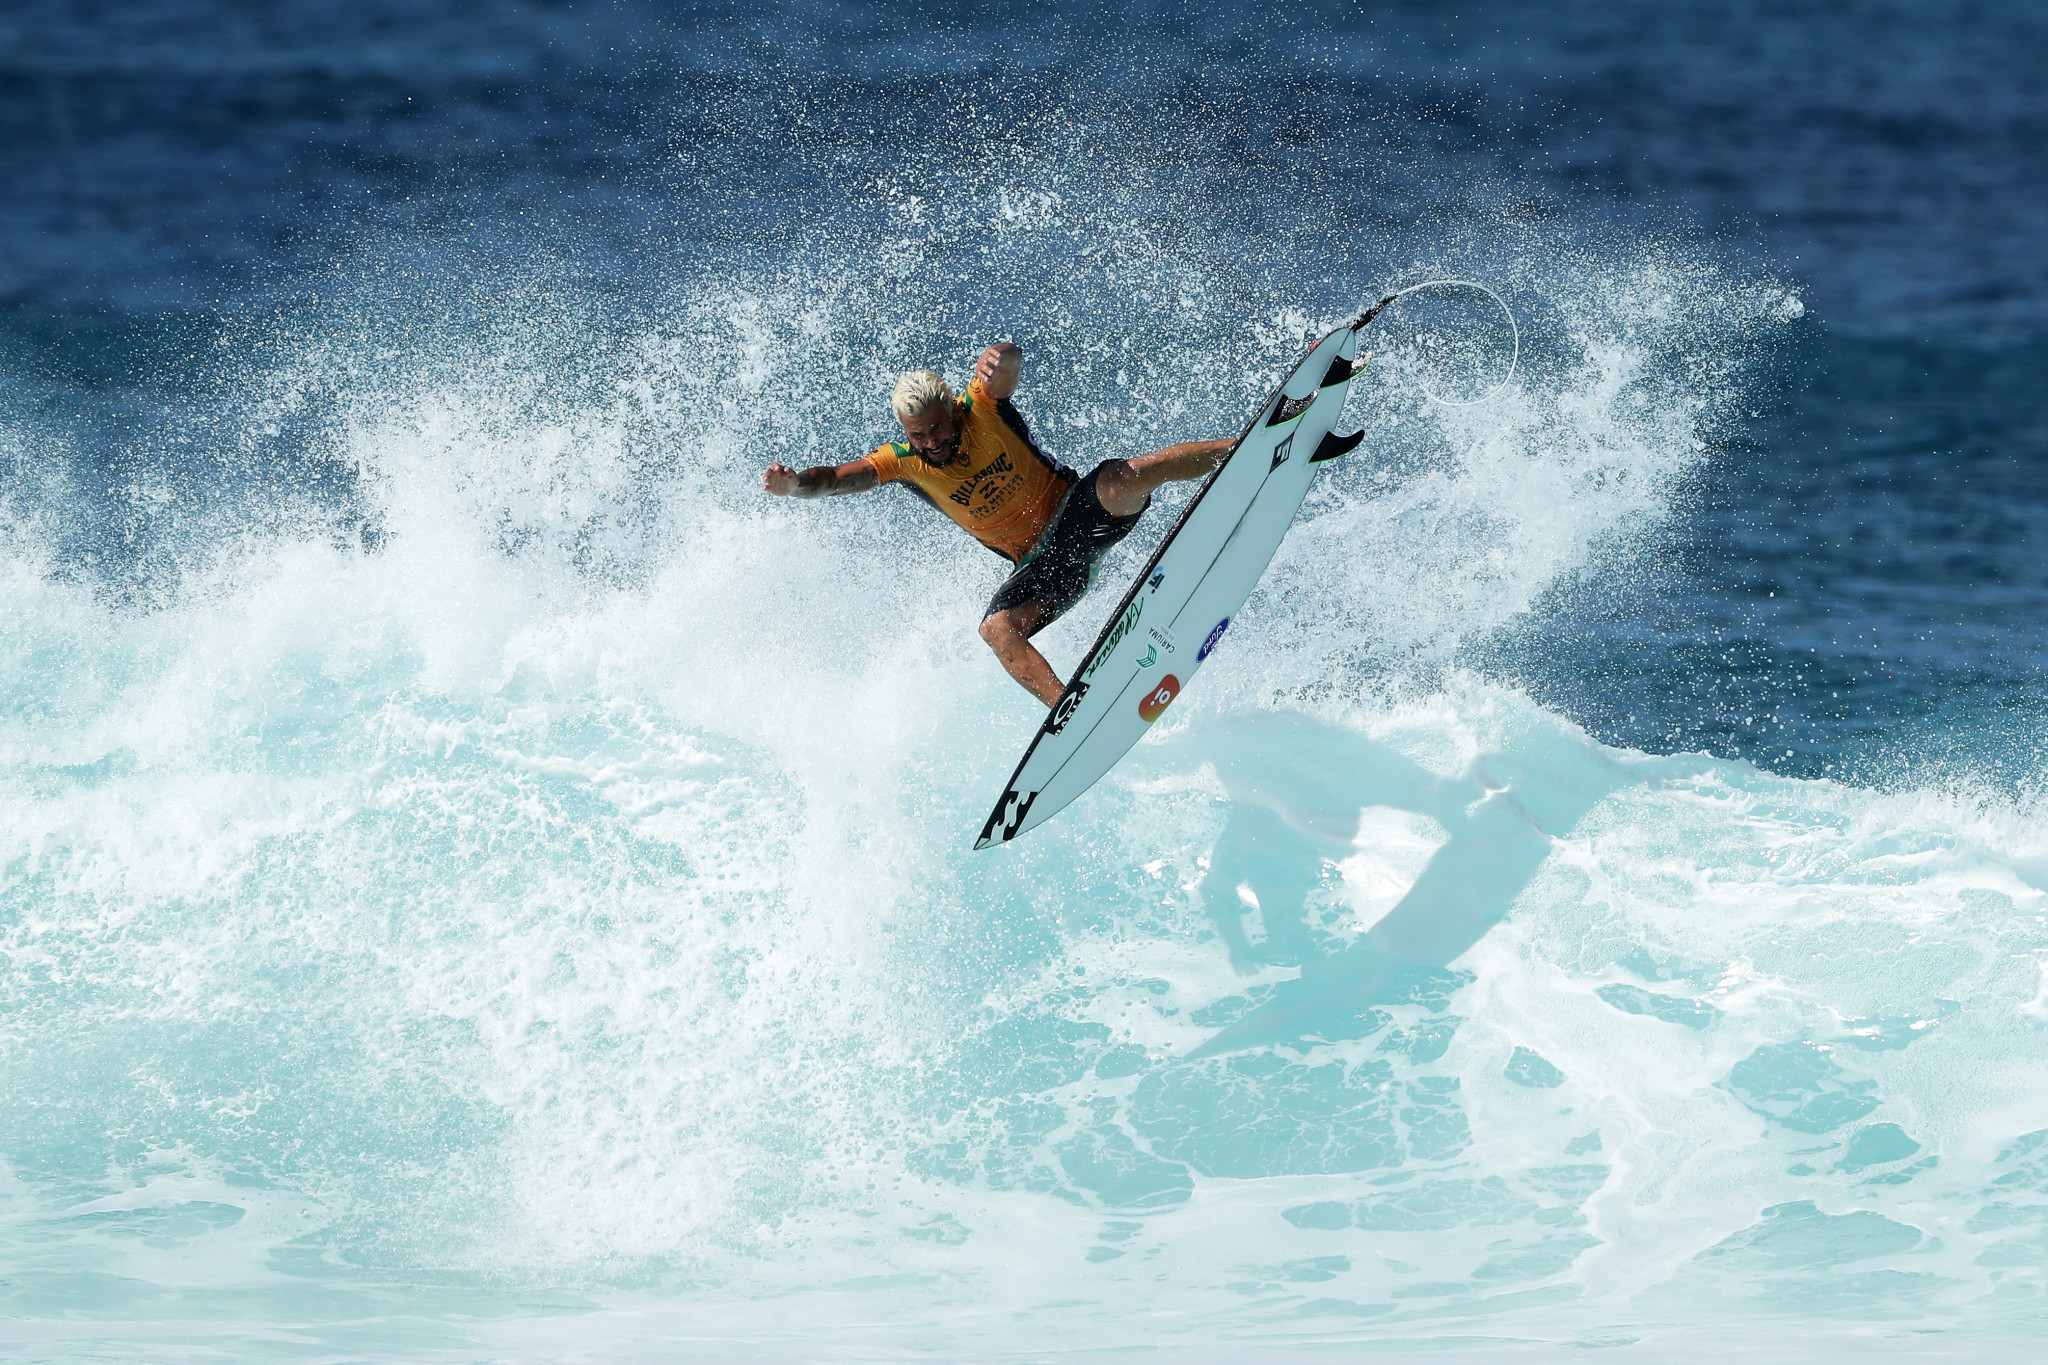 Ferreira clinches World Surf League crown but Olympic hopes of legend Slater dashed